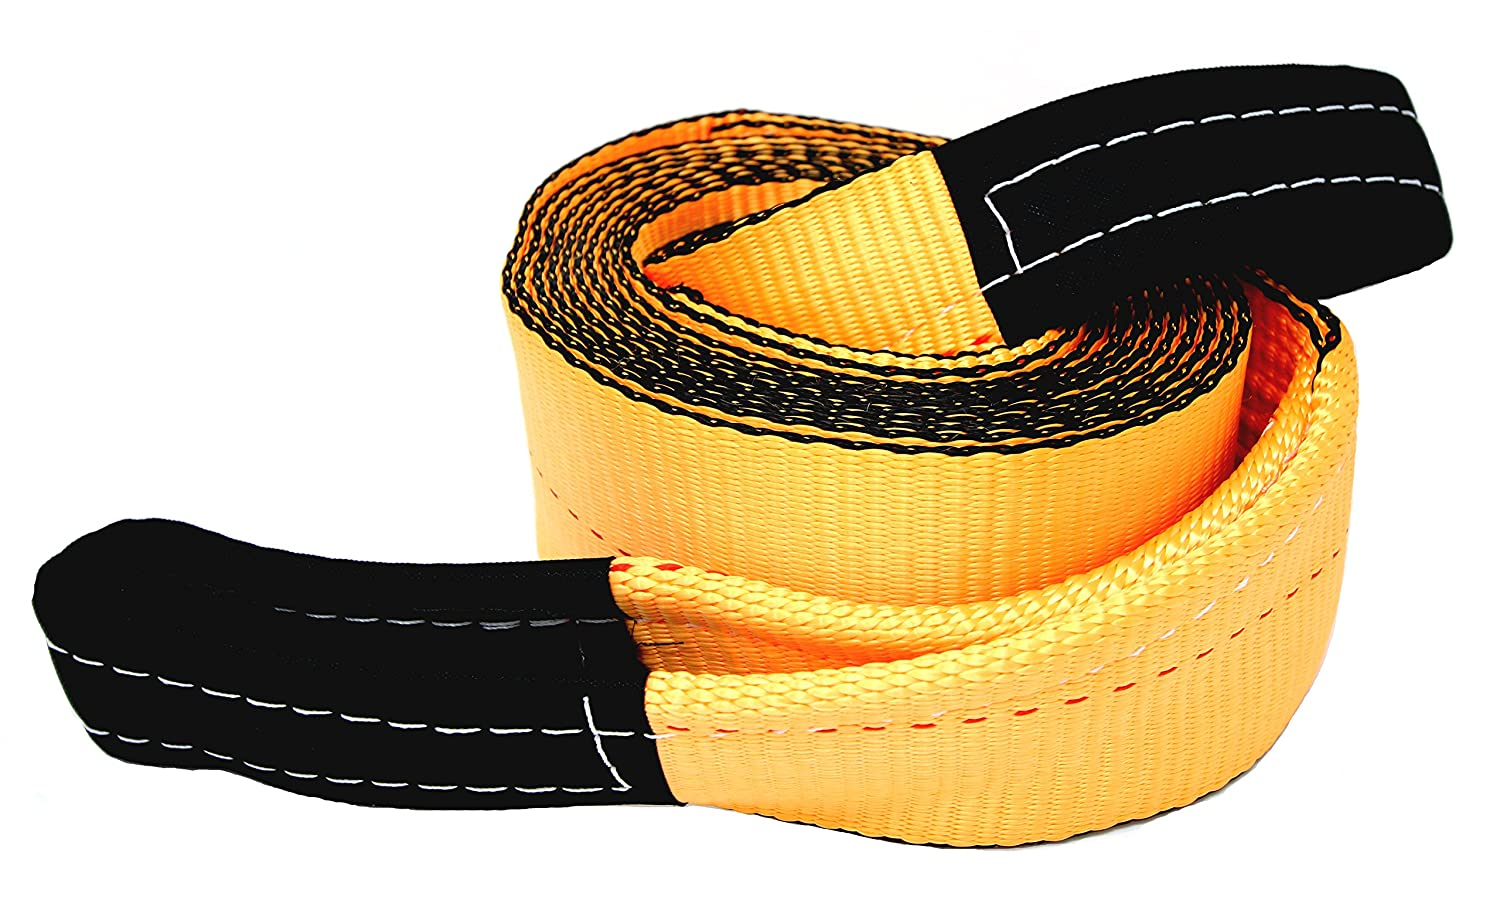 Tanaka 4' Super Duty 35, 000 LB rated Recovery Tow Strap (4' x 20') 000 LB rated Recovery Tow Strap (4 x 20' )